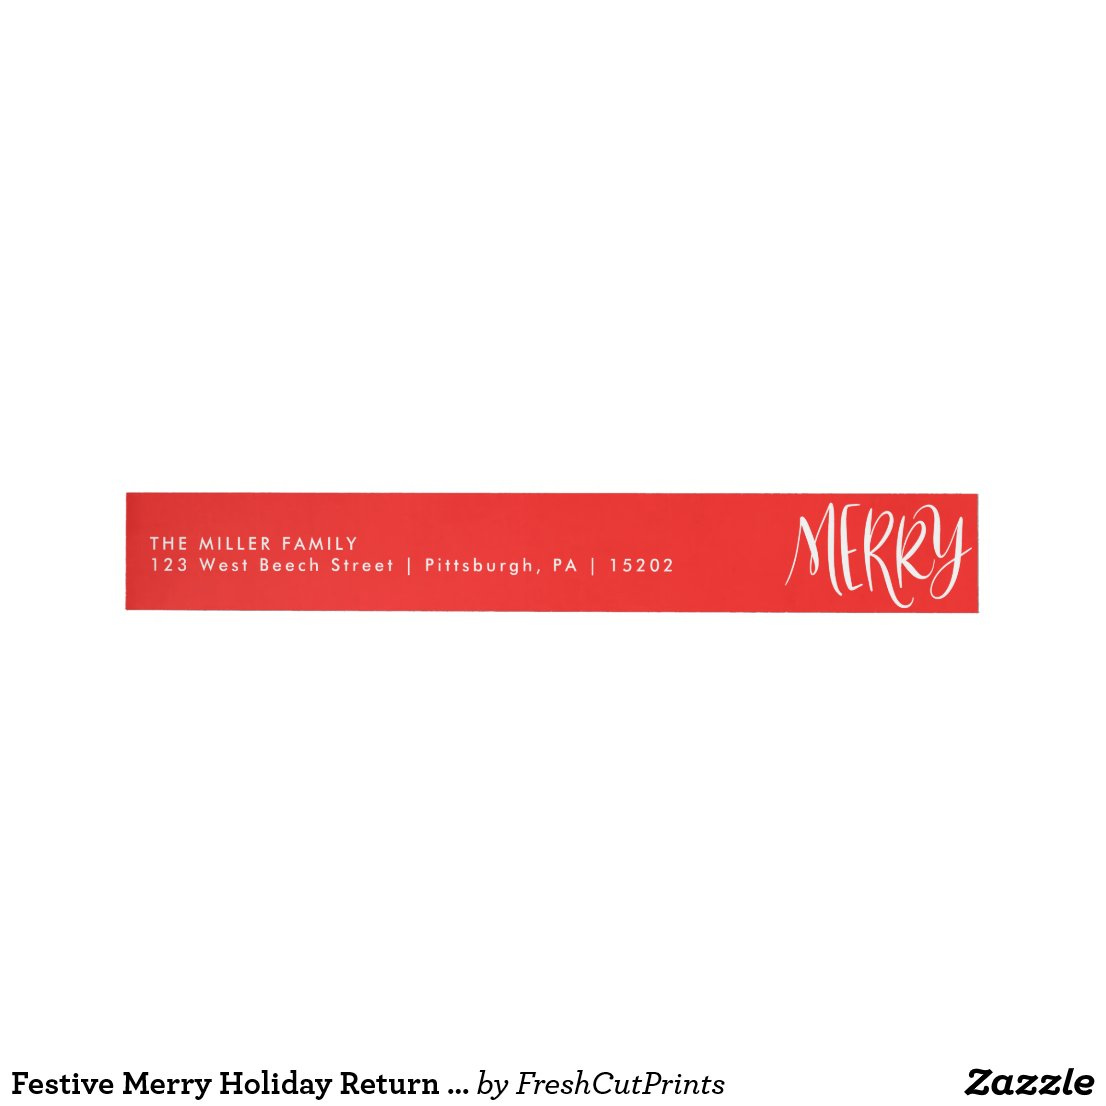 Festive Merry Holiday Return Address Labels